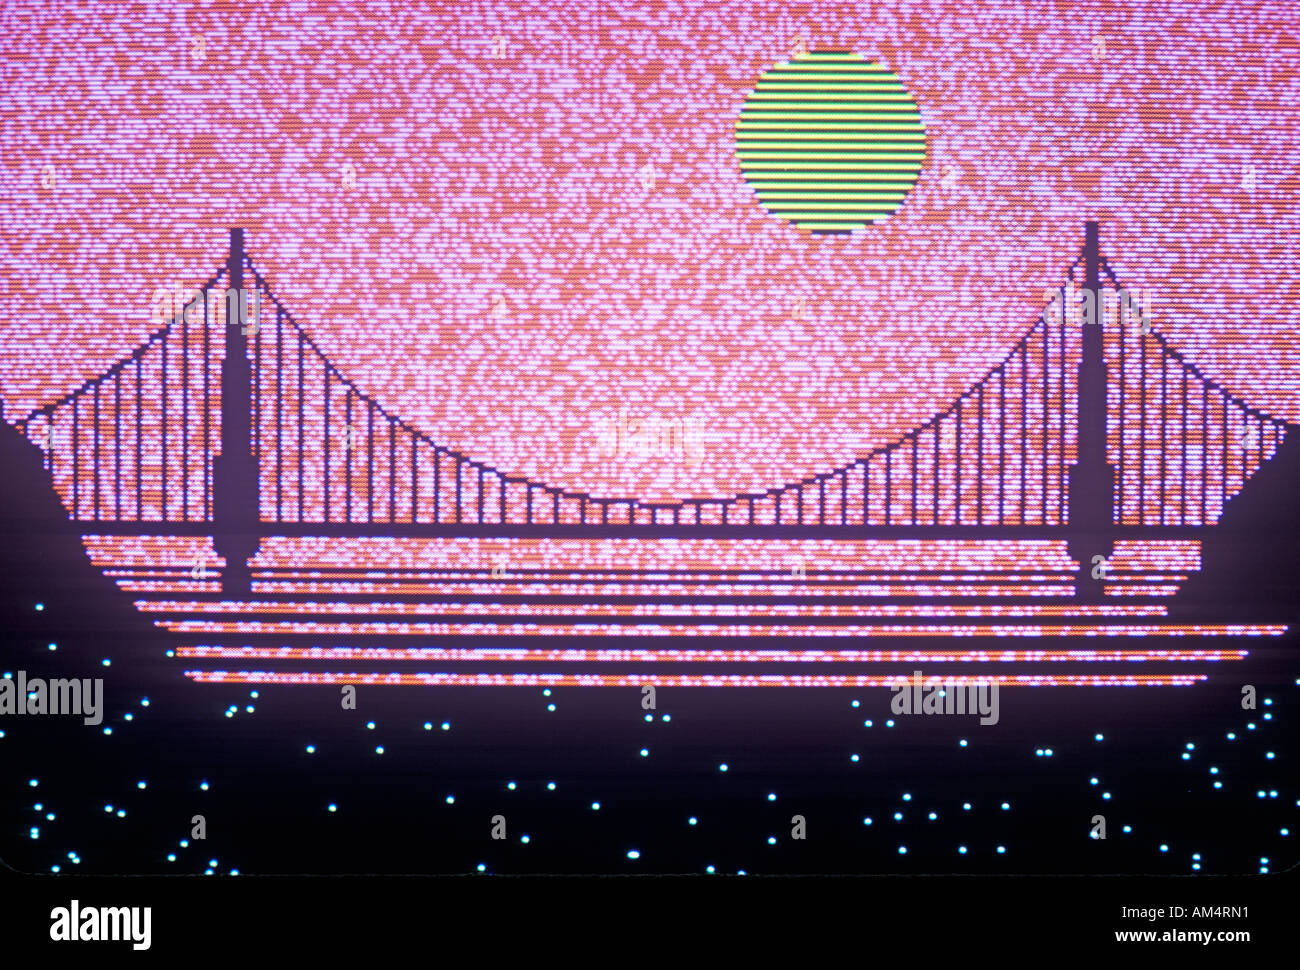 Computer graphics rendition of the Bay Bridge San Francisco California - Stock Image